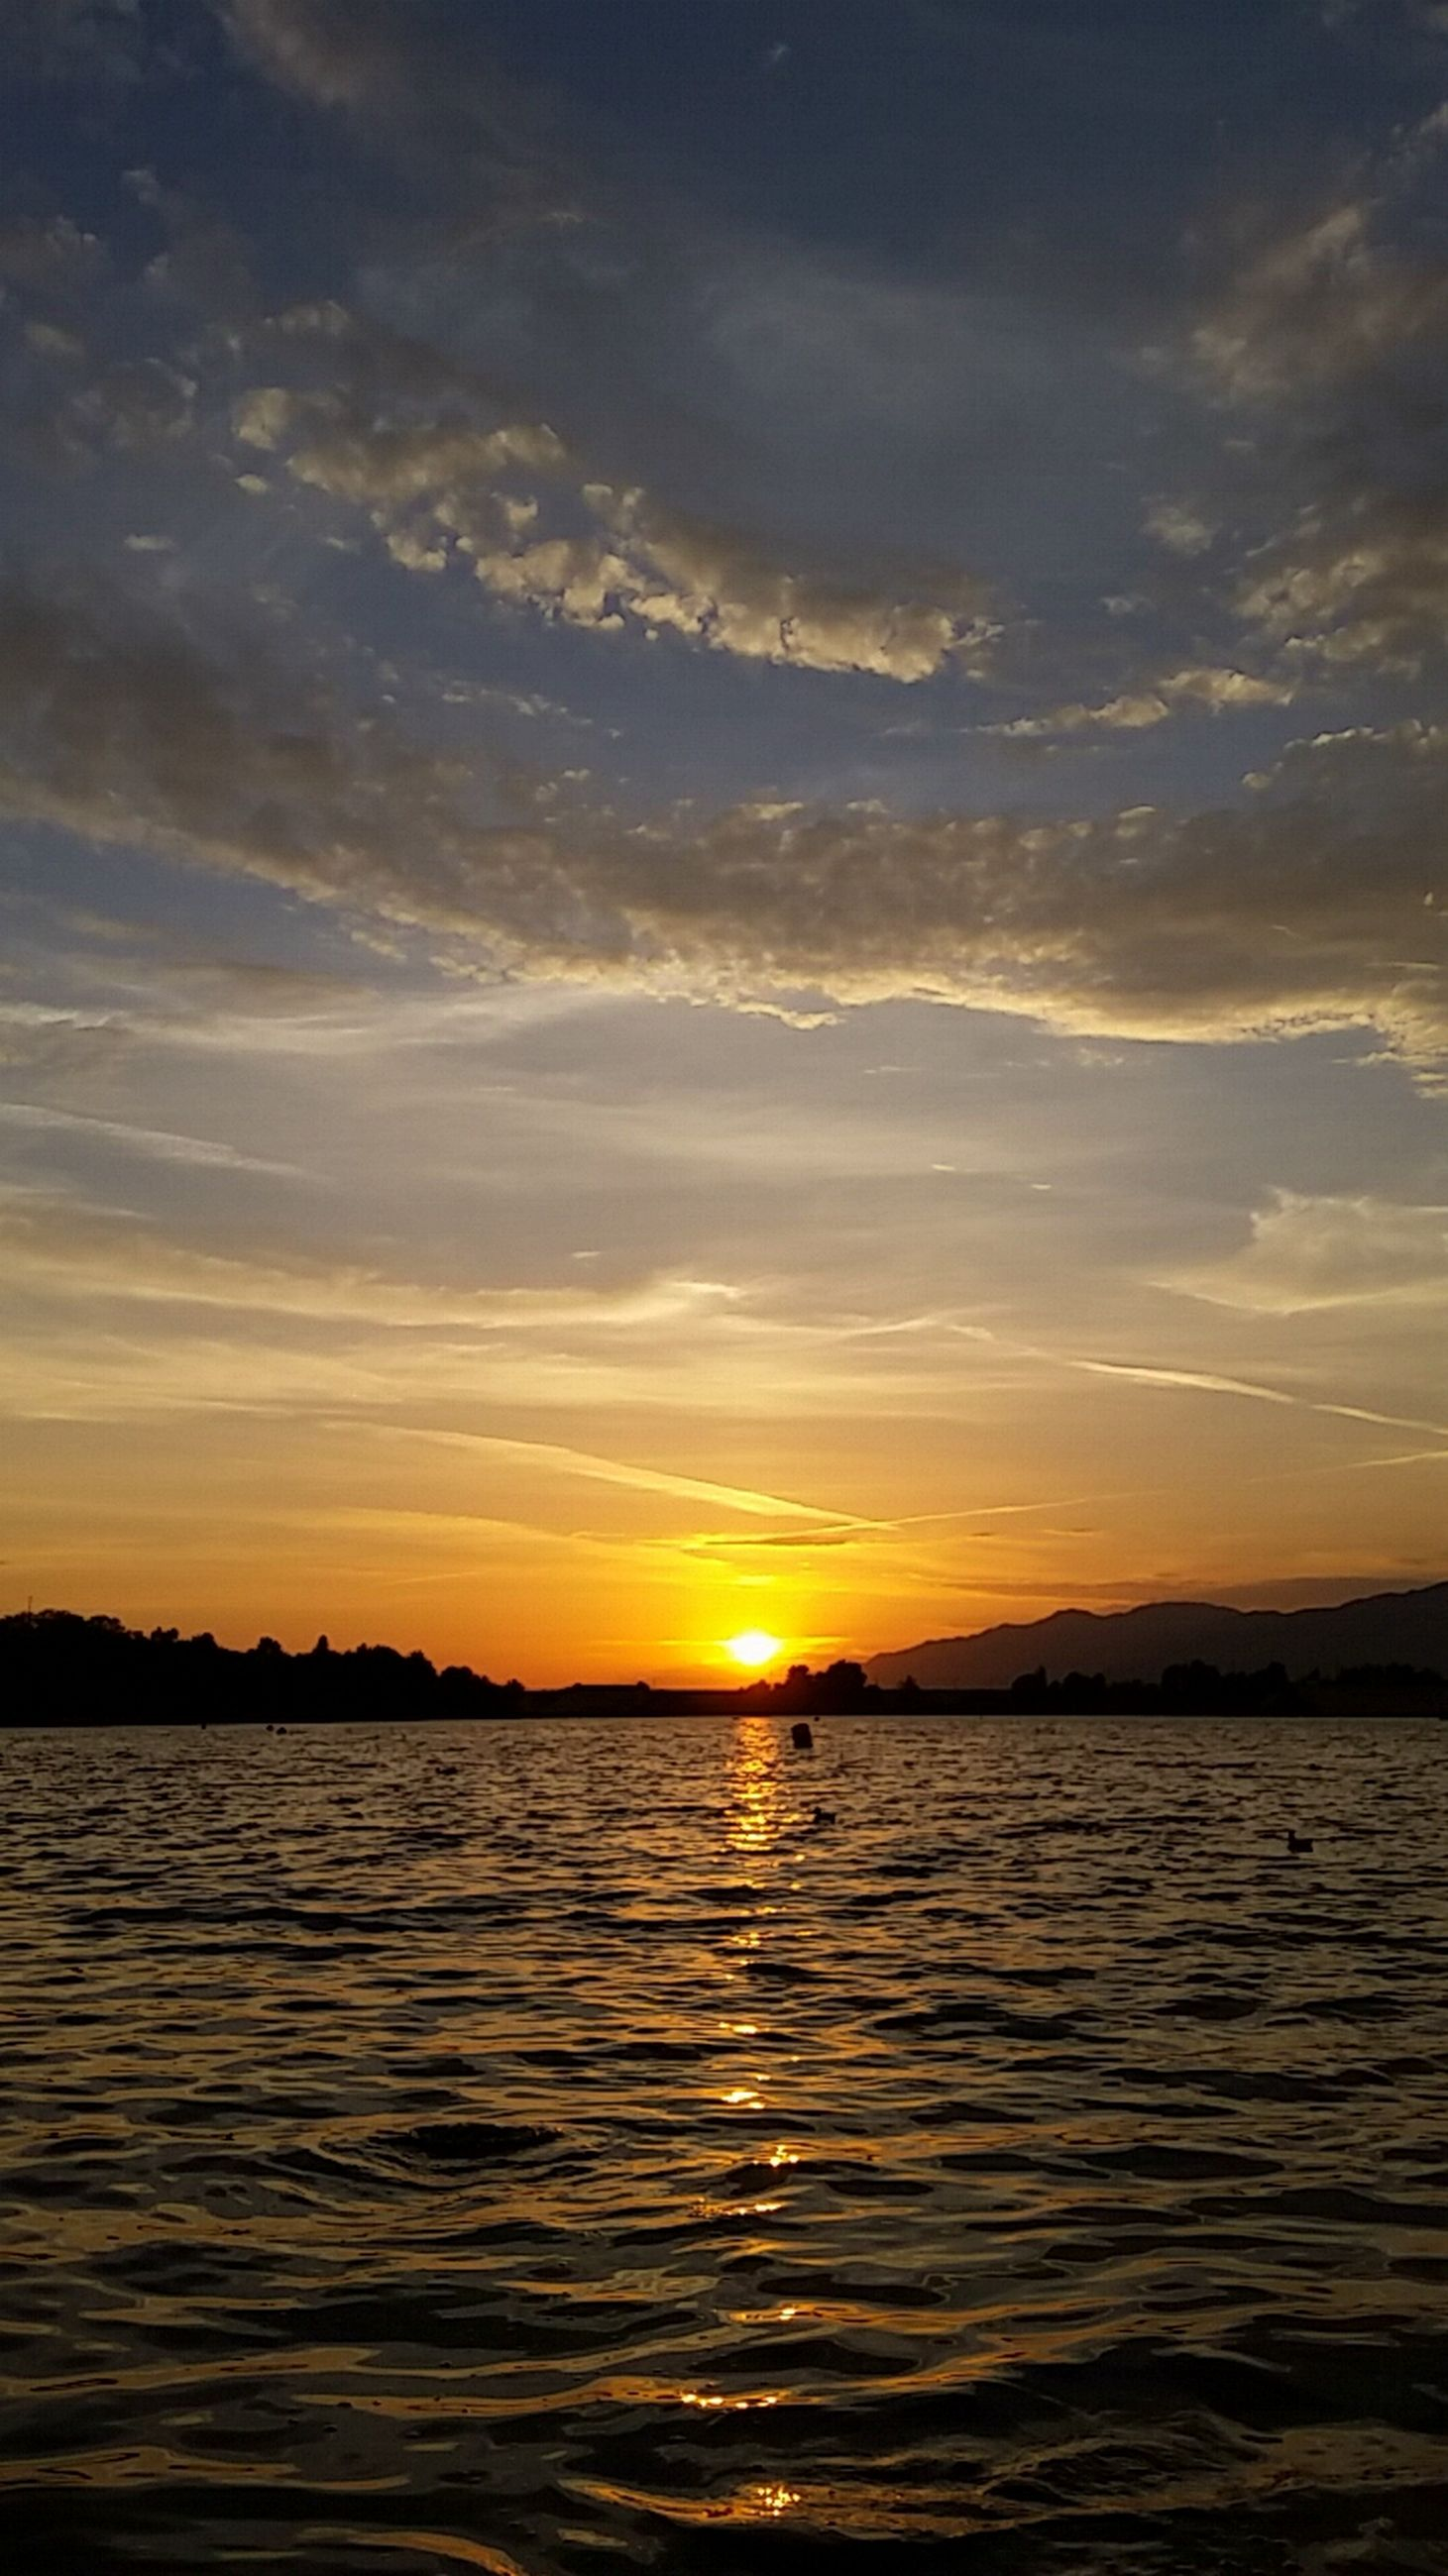 sunset, water, scenics, waterfront, tranquil scene, tranquility, sky, beauty in nature, sun, sea, orange color, rippled, nature, idyllic, reflection, silhouette, cloud - sky, sunlight, cloud, outdoors